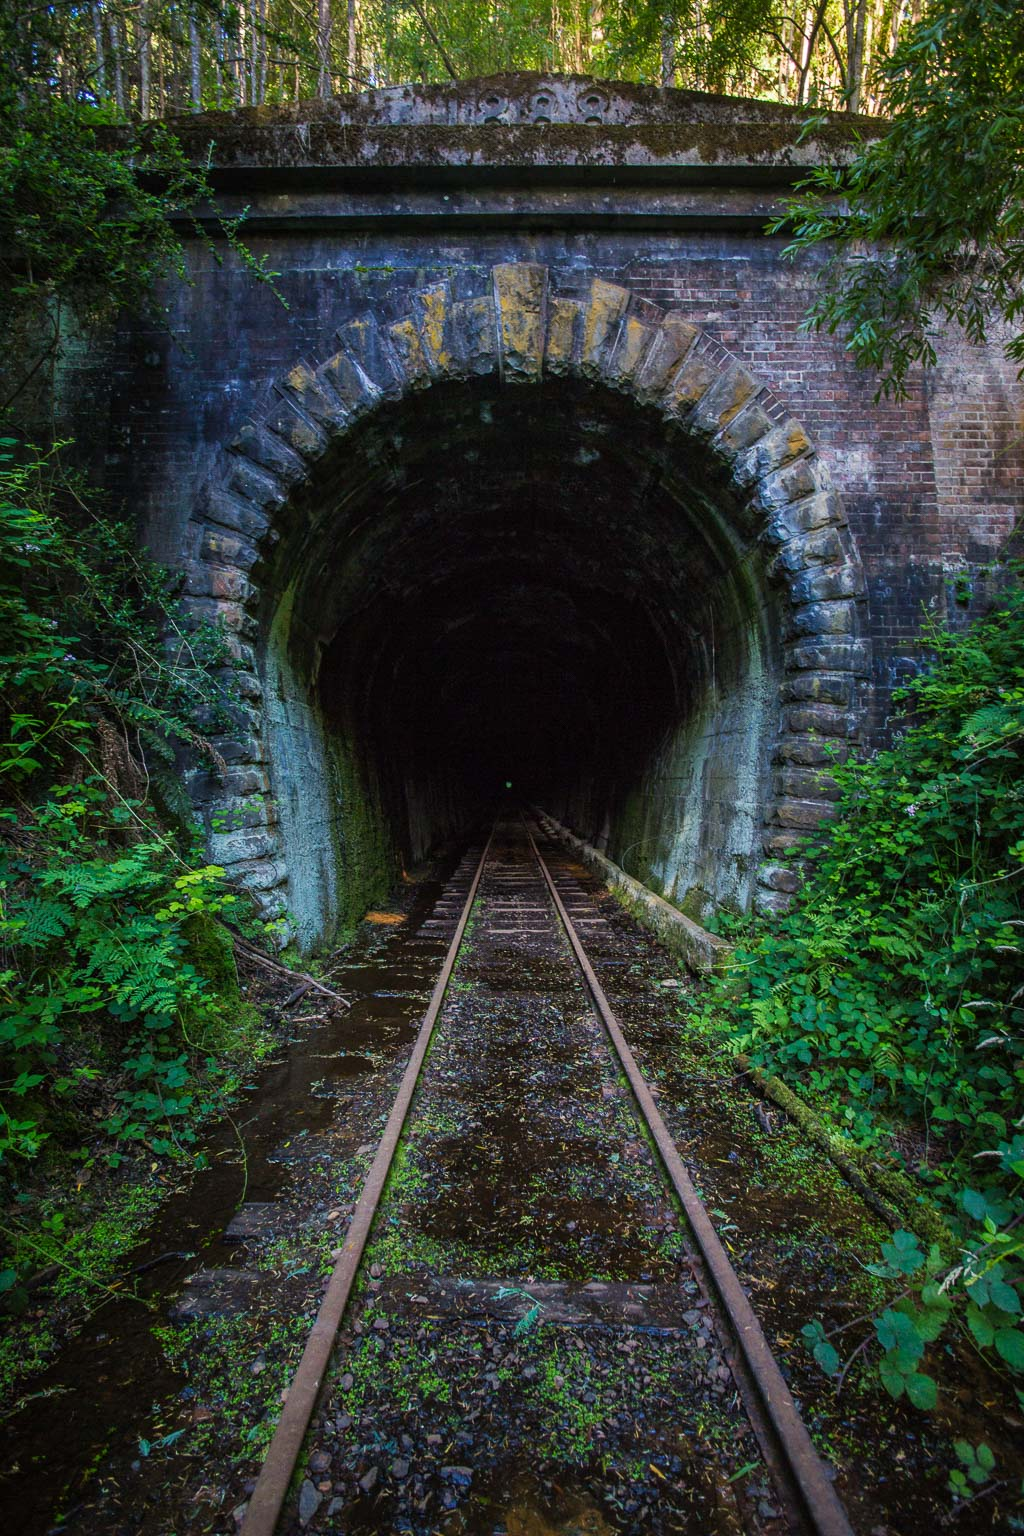 Tunnel in the hamlet of Tunnel.